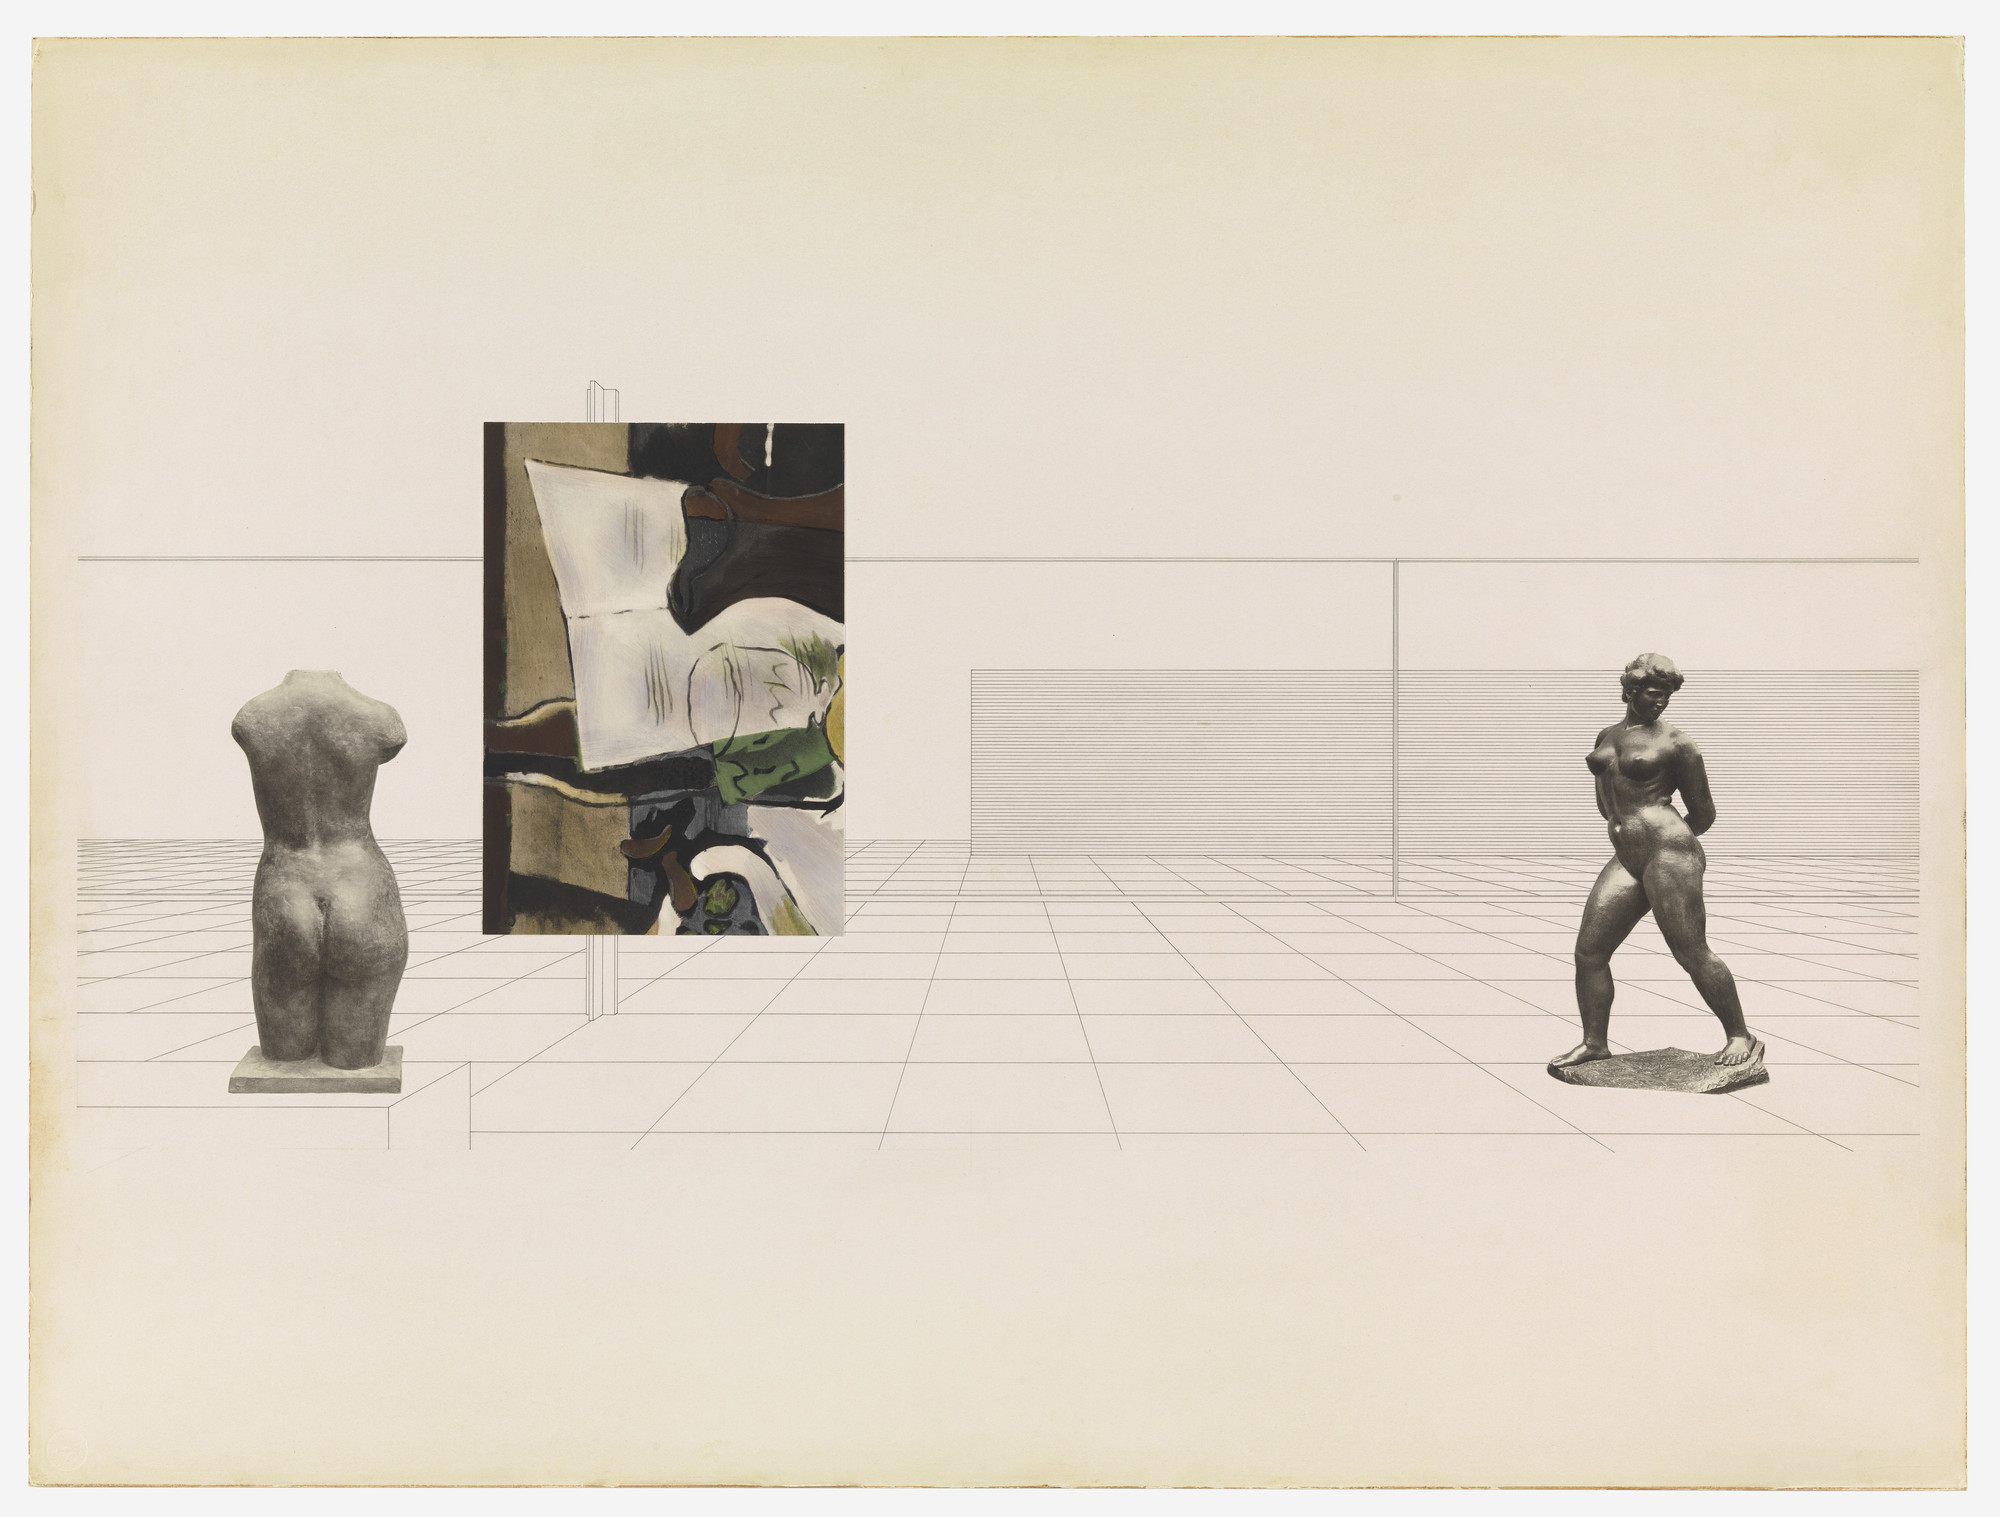 Ludwig Mies van der Rohe. Museum for a Small City project (Interior perspective). 1941-43